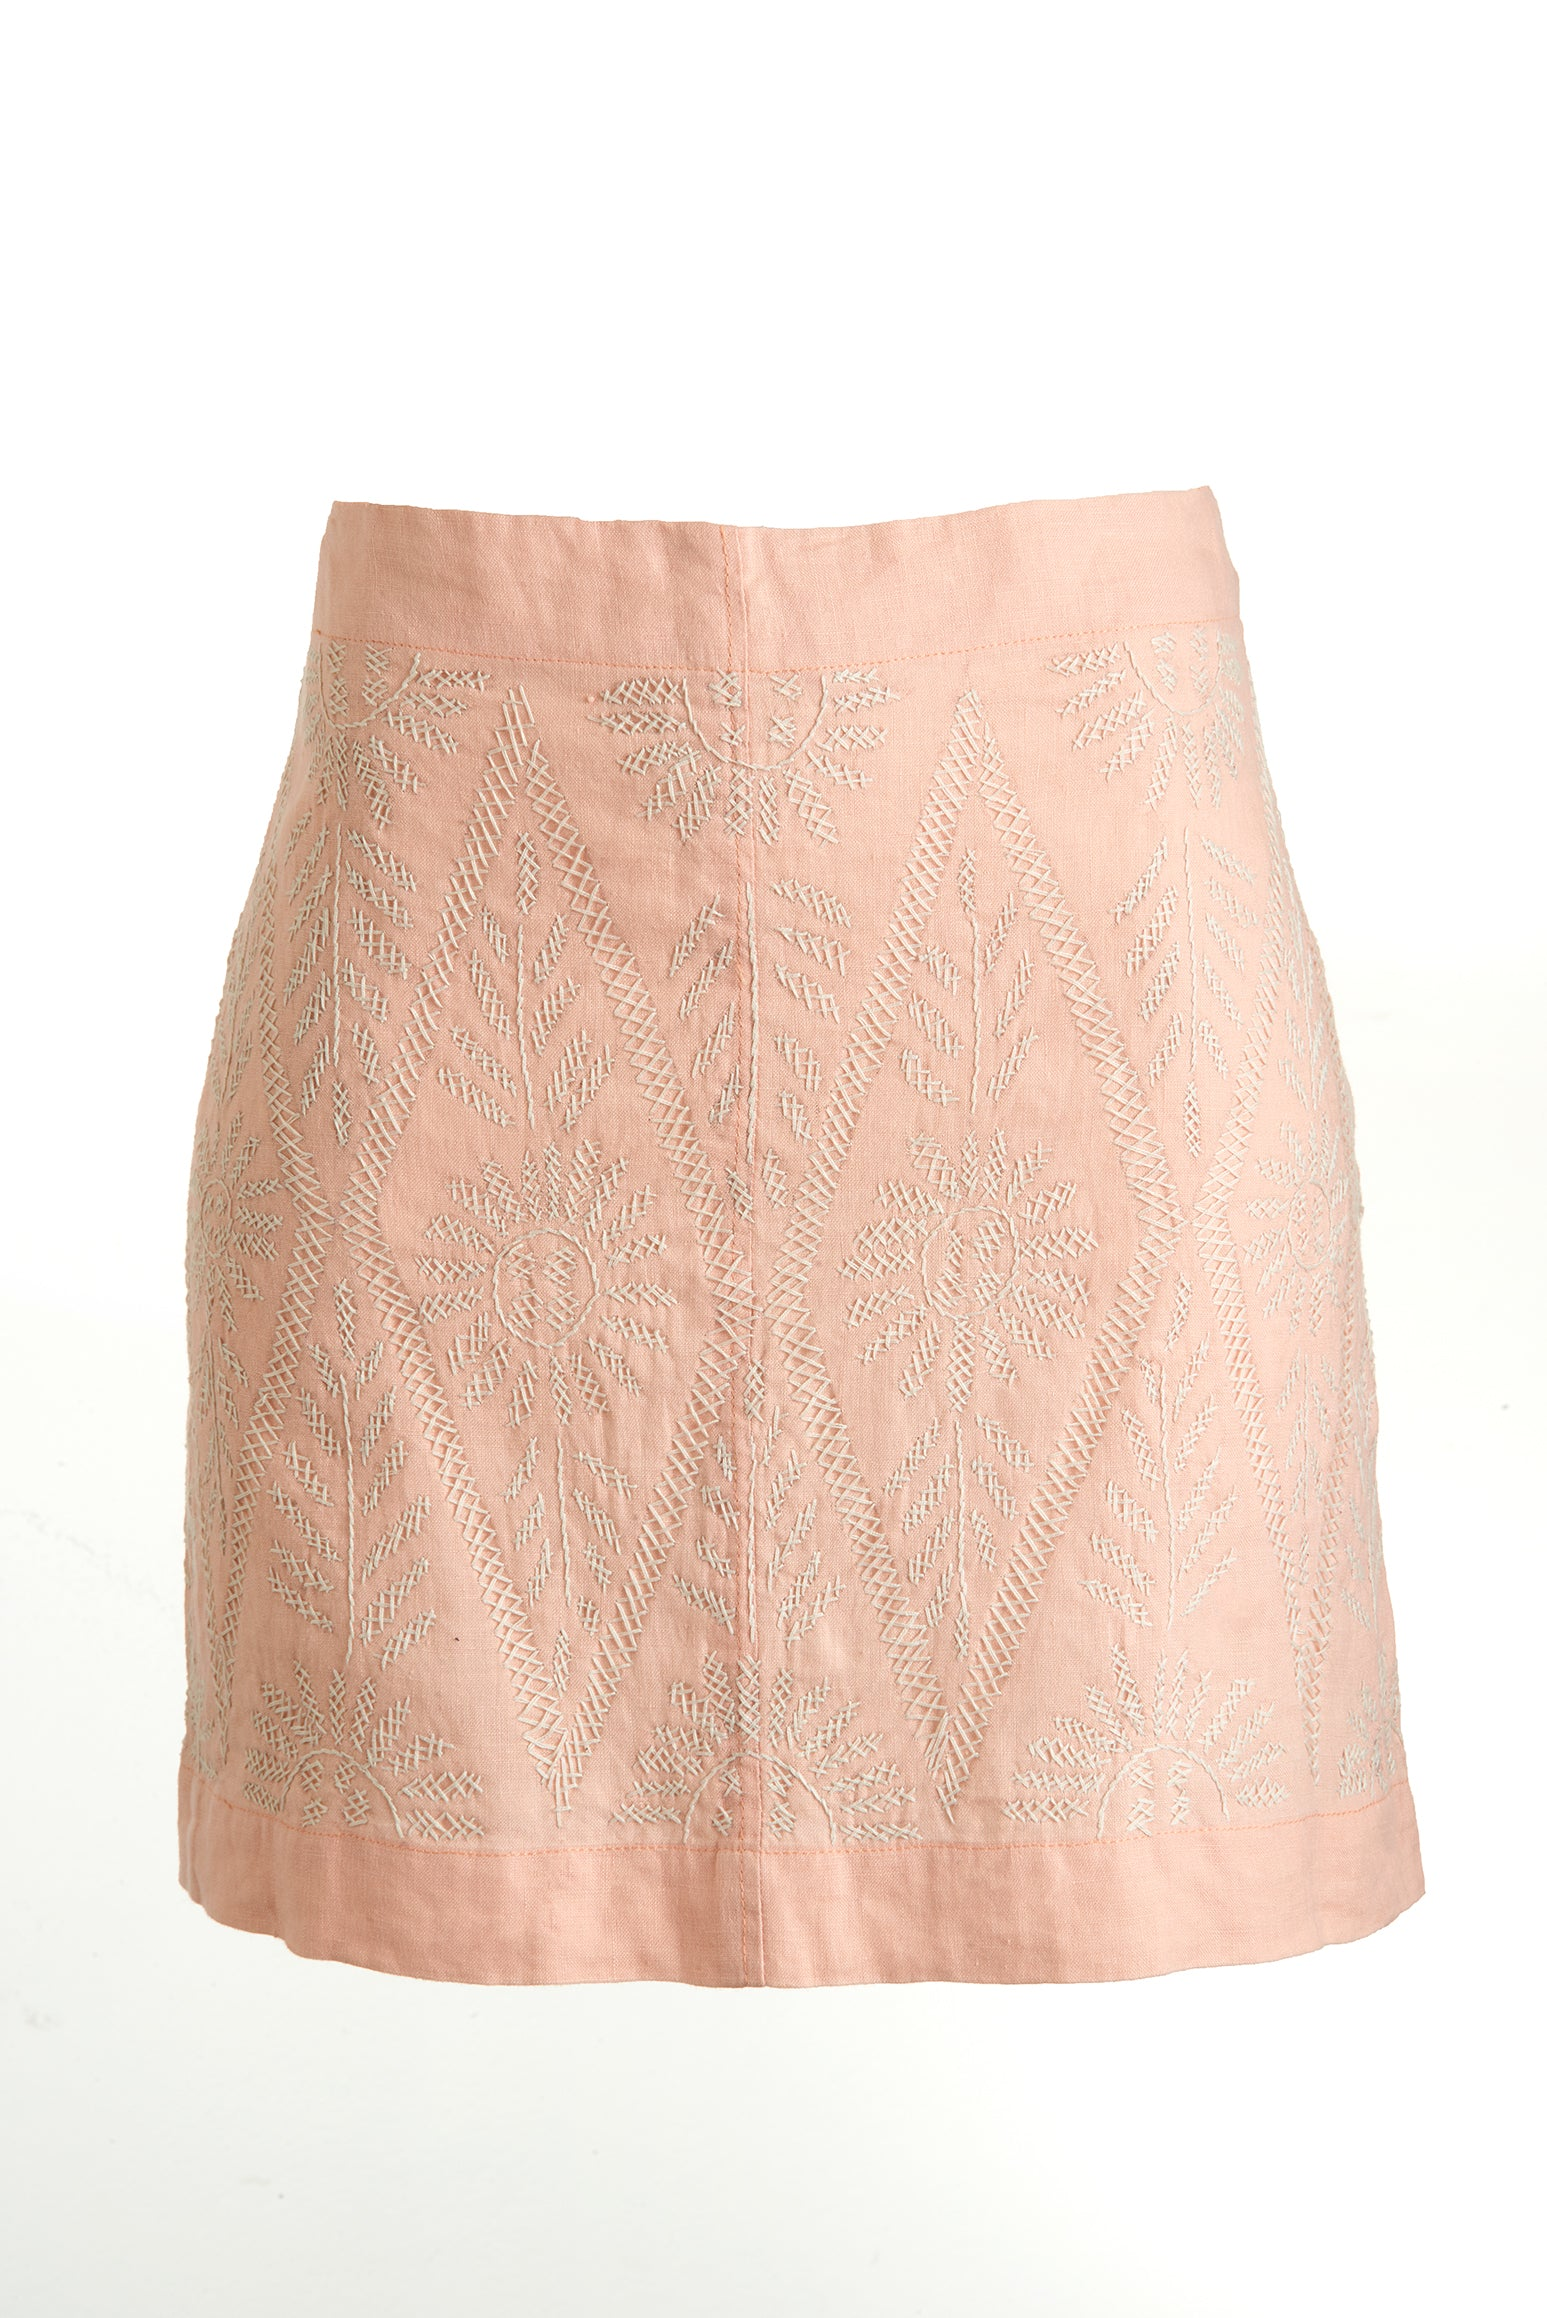 THE NICTE MINI SKIRT